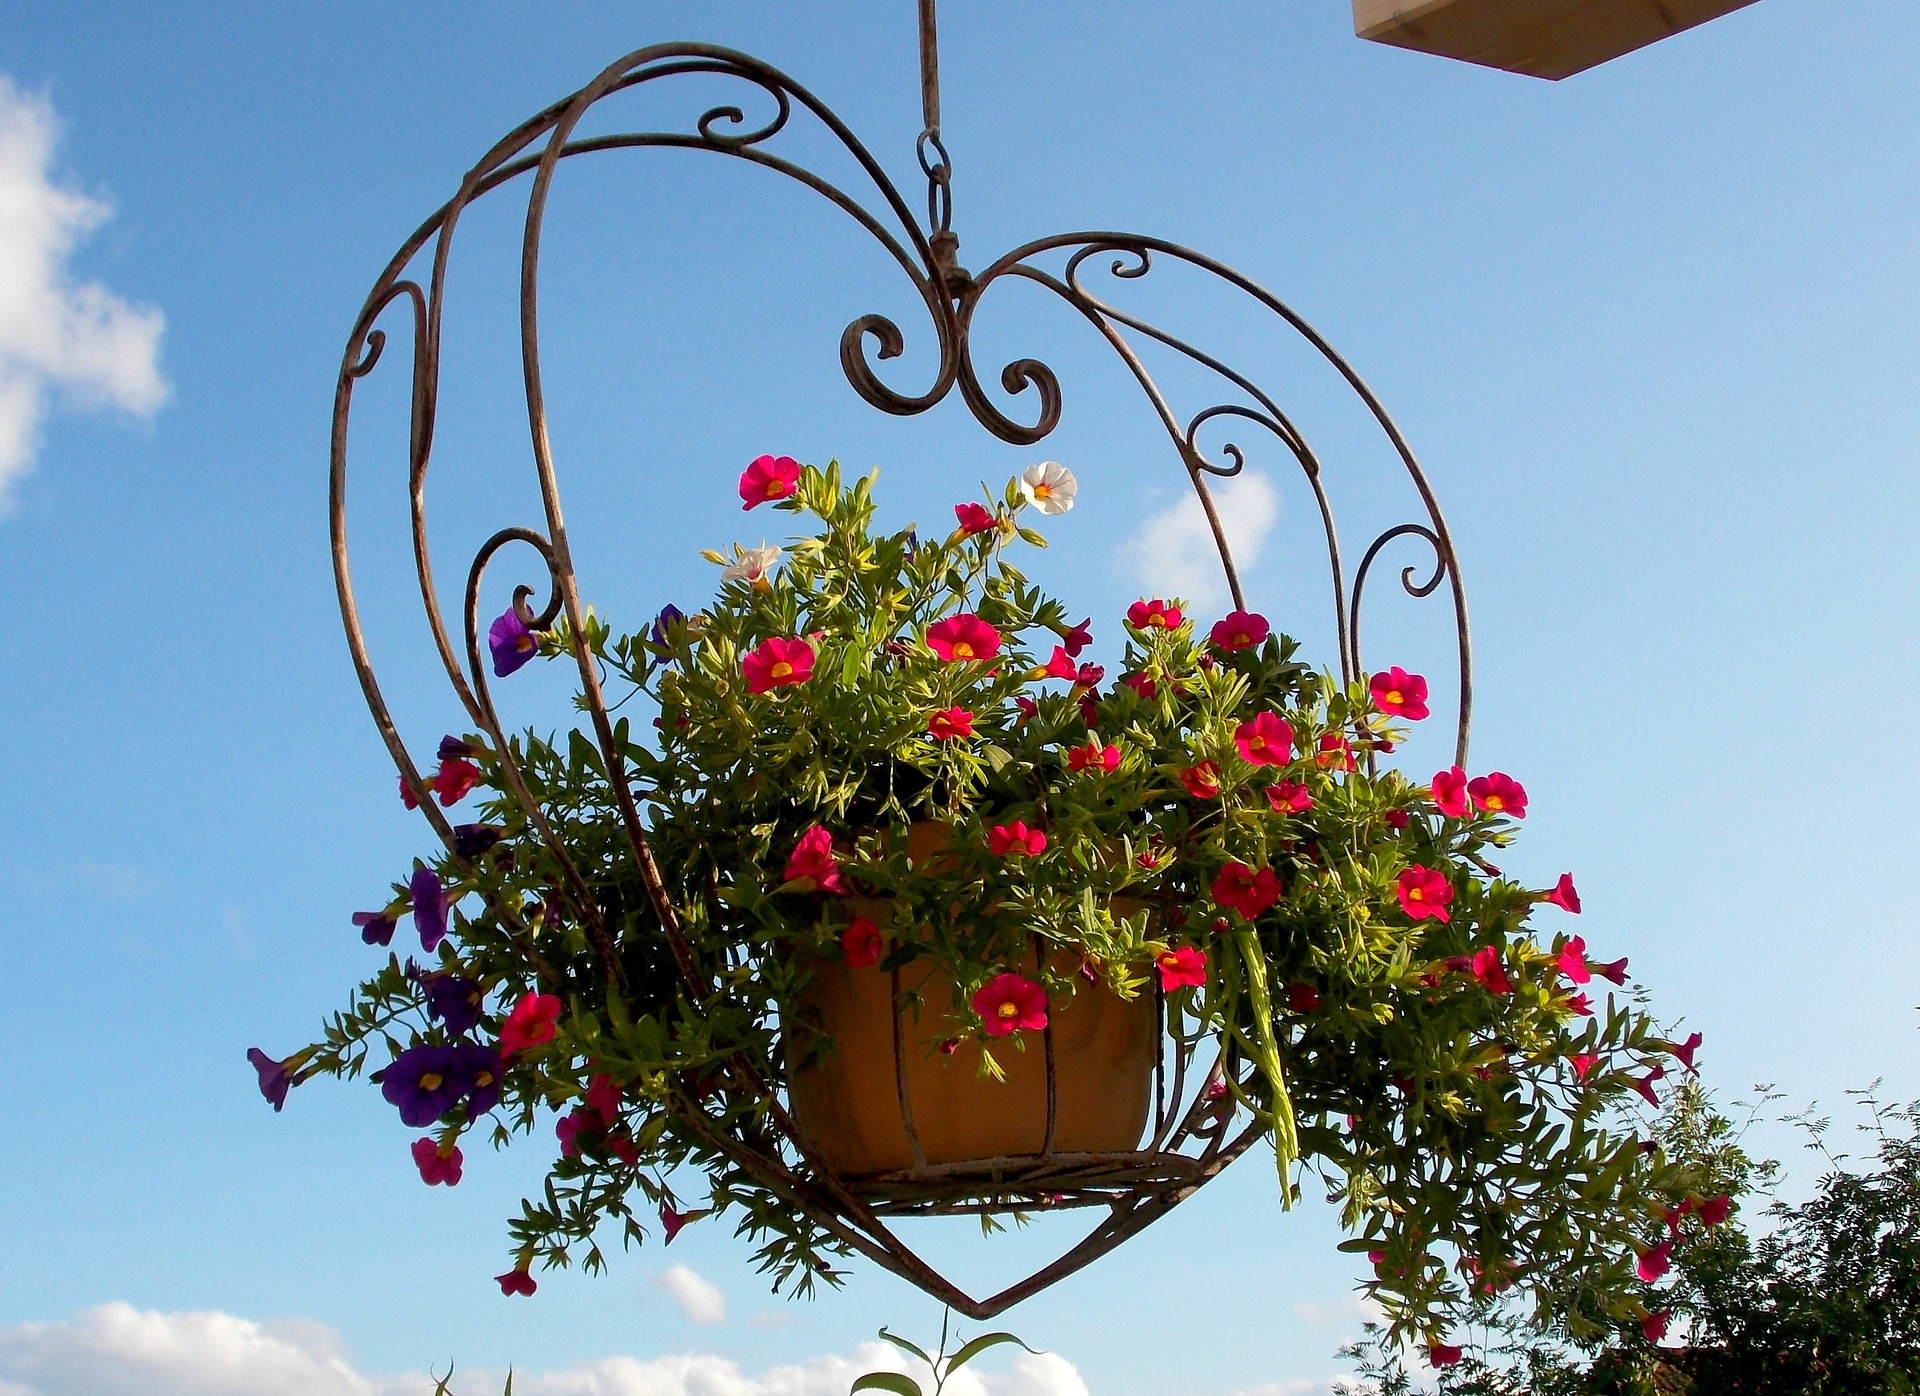 hanging-flower-basket-reston-farm-market-va.jpg